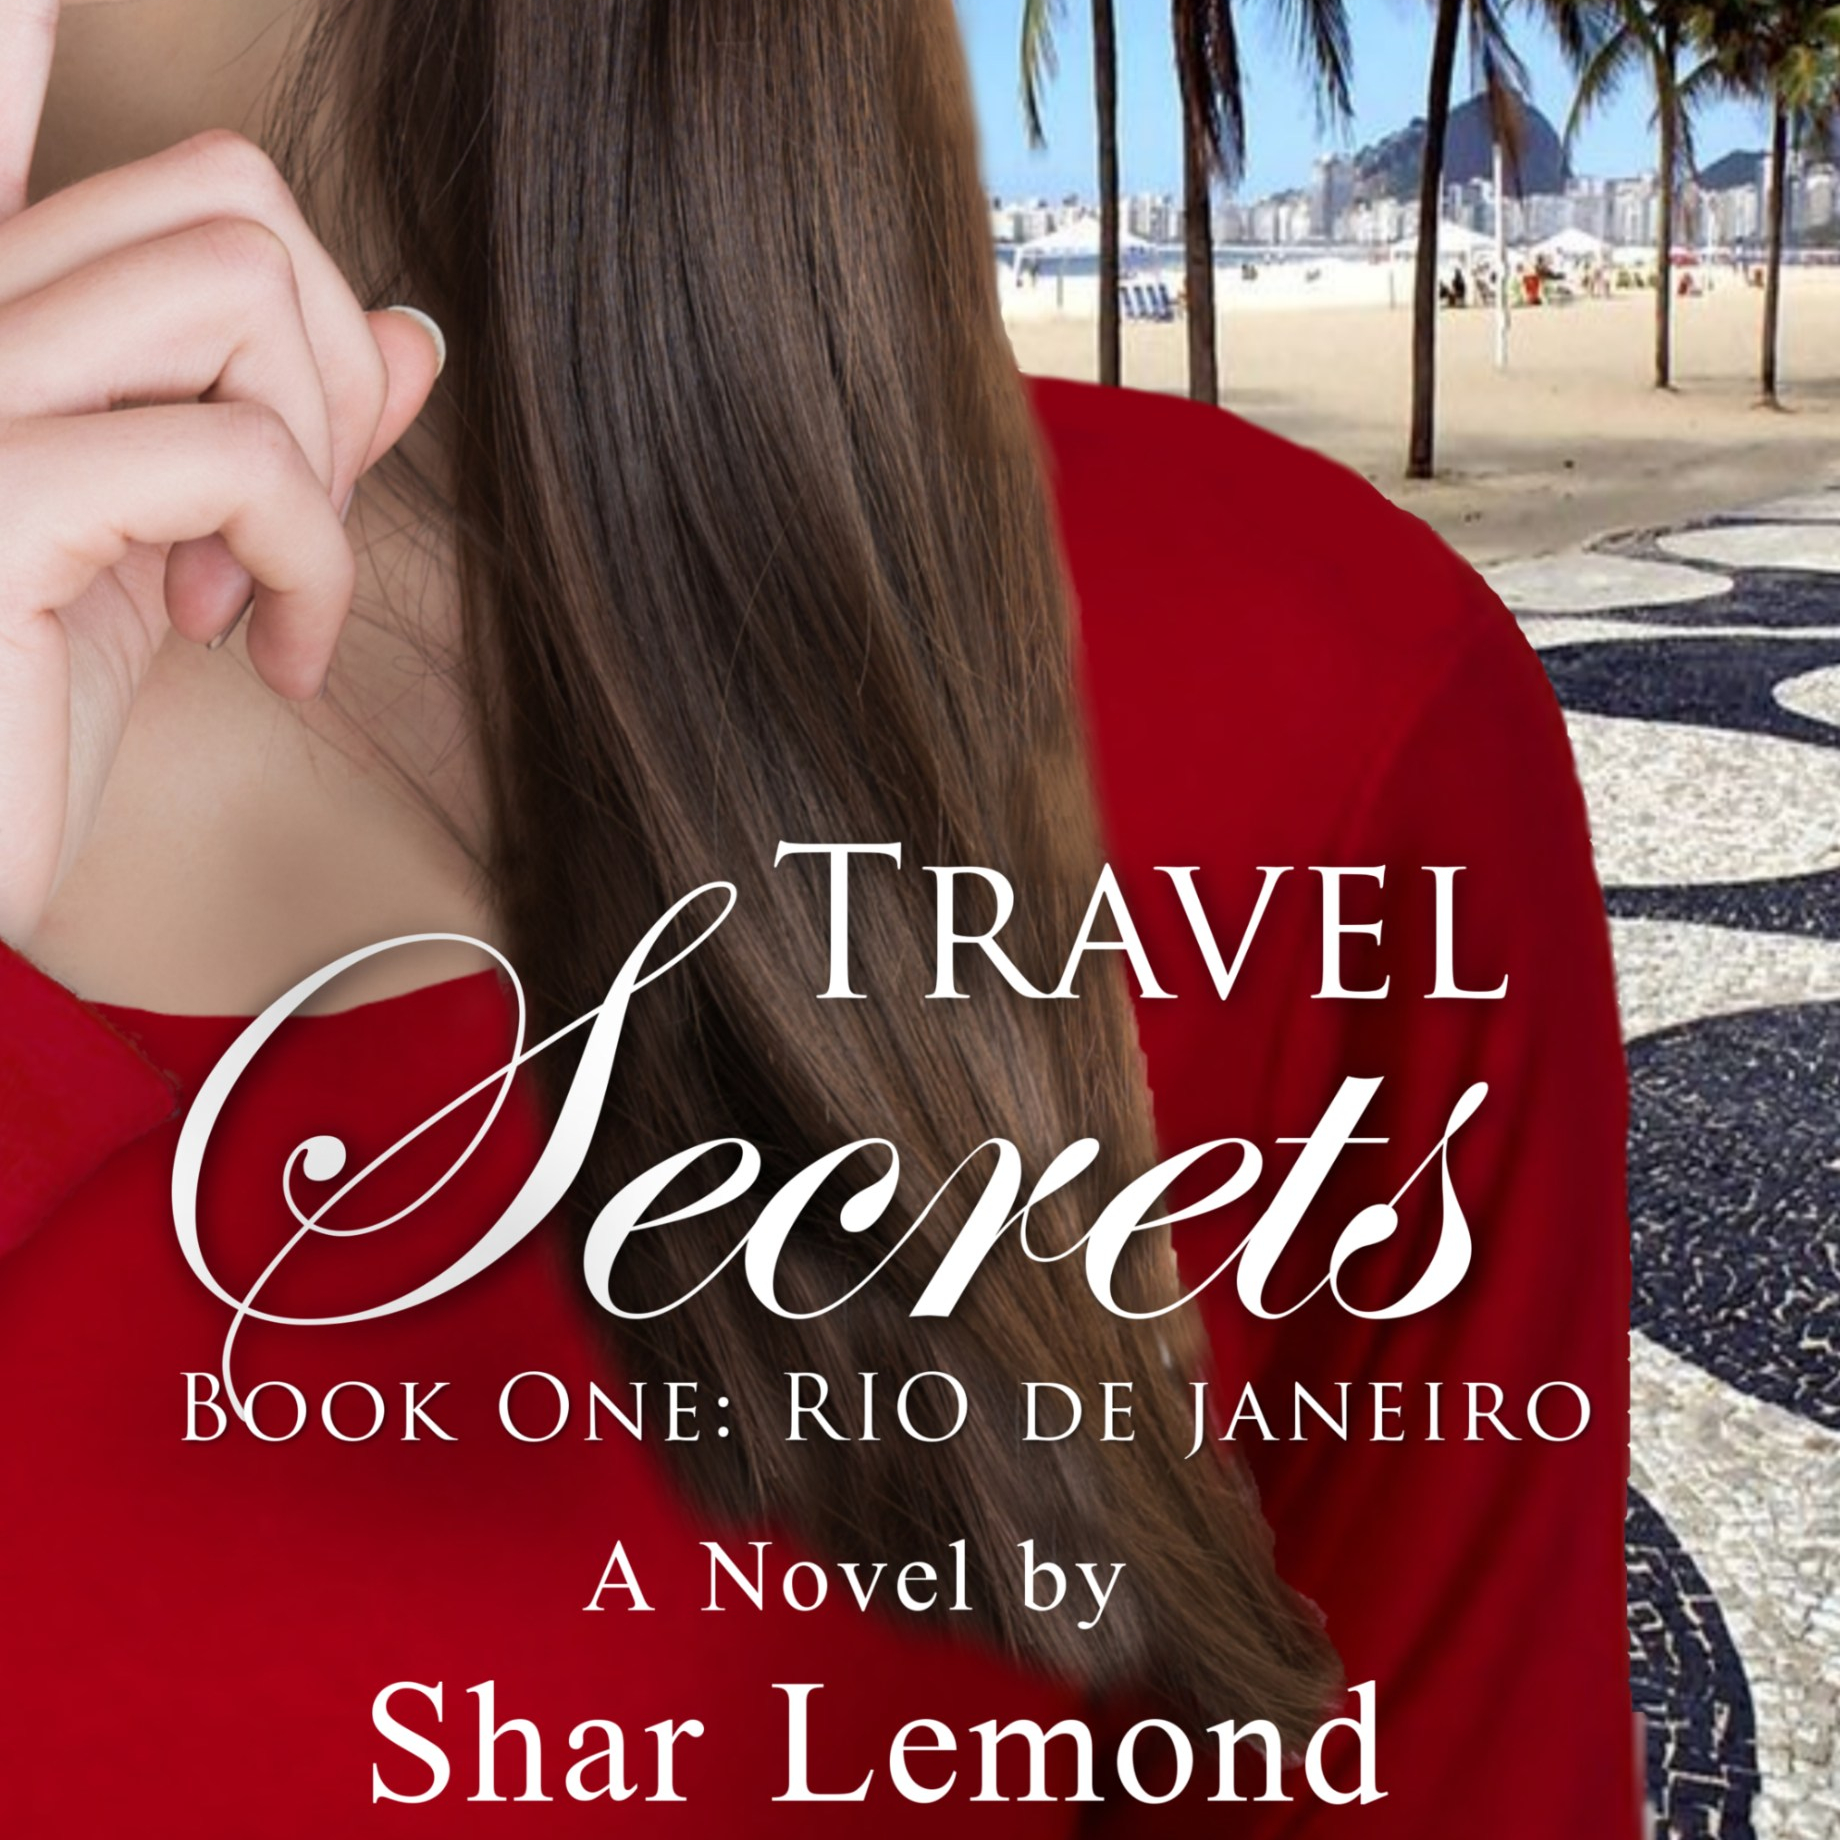 cropped-travel-secrets-words-shadowed-kindle